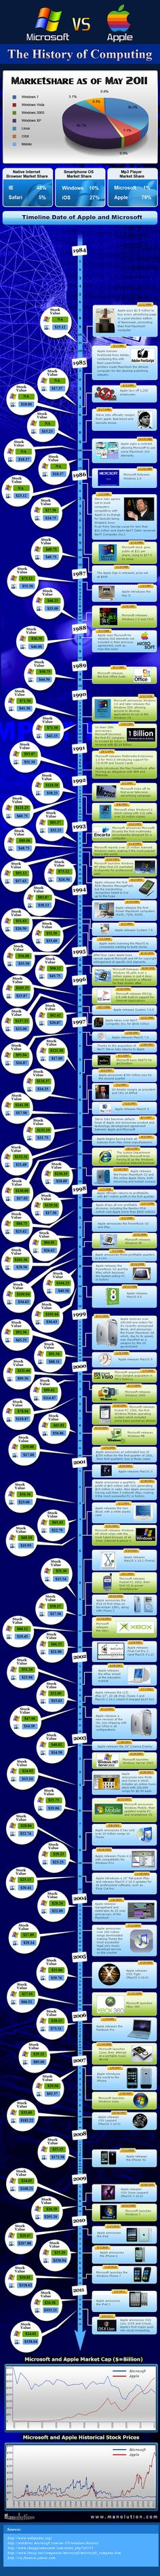 Istoria calculatoarelor  Microsoft vs. Apple: The History Of Computing